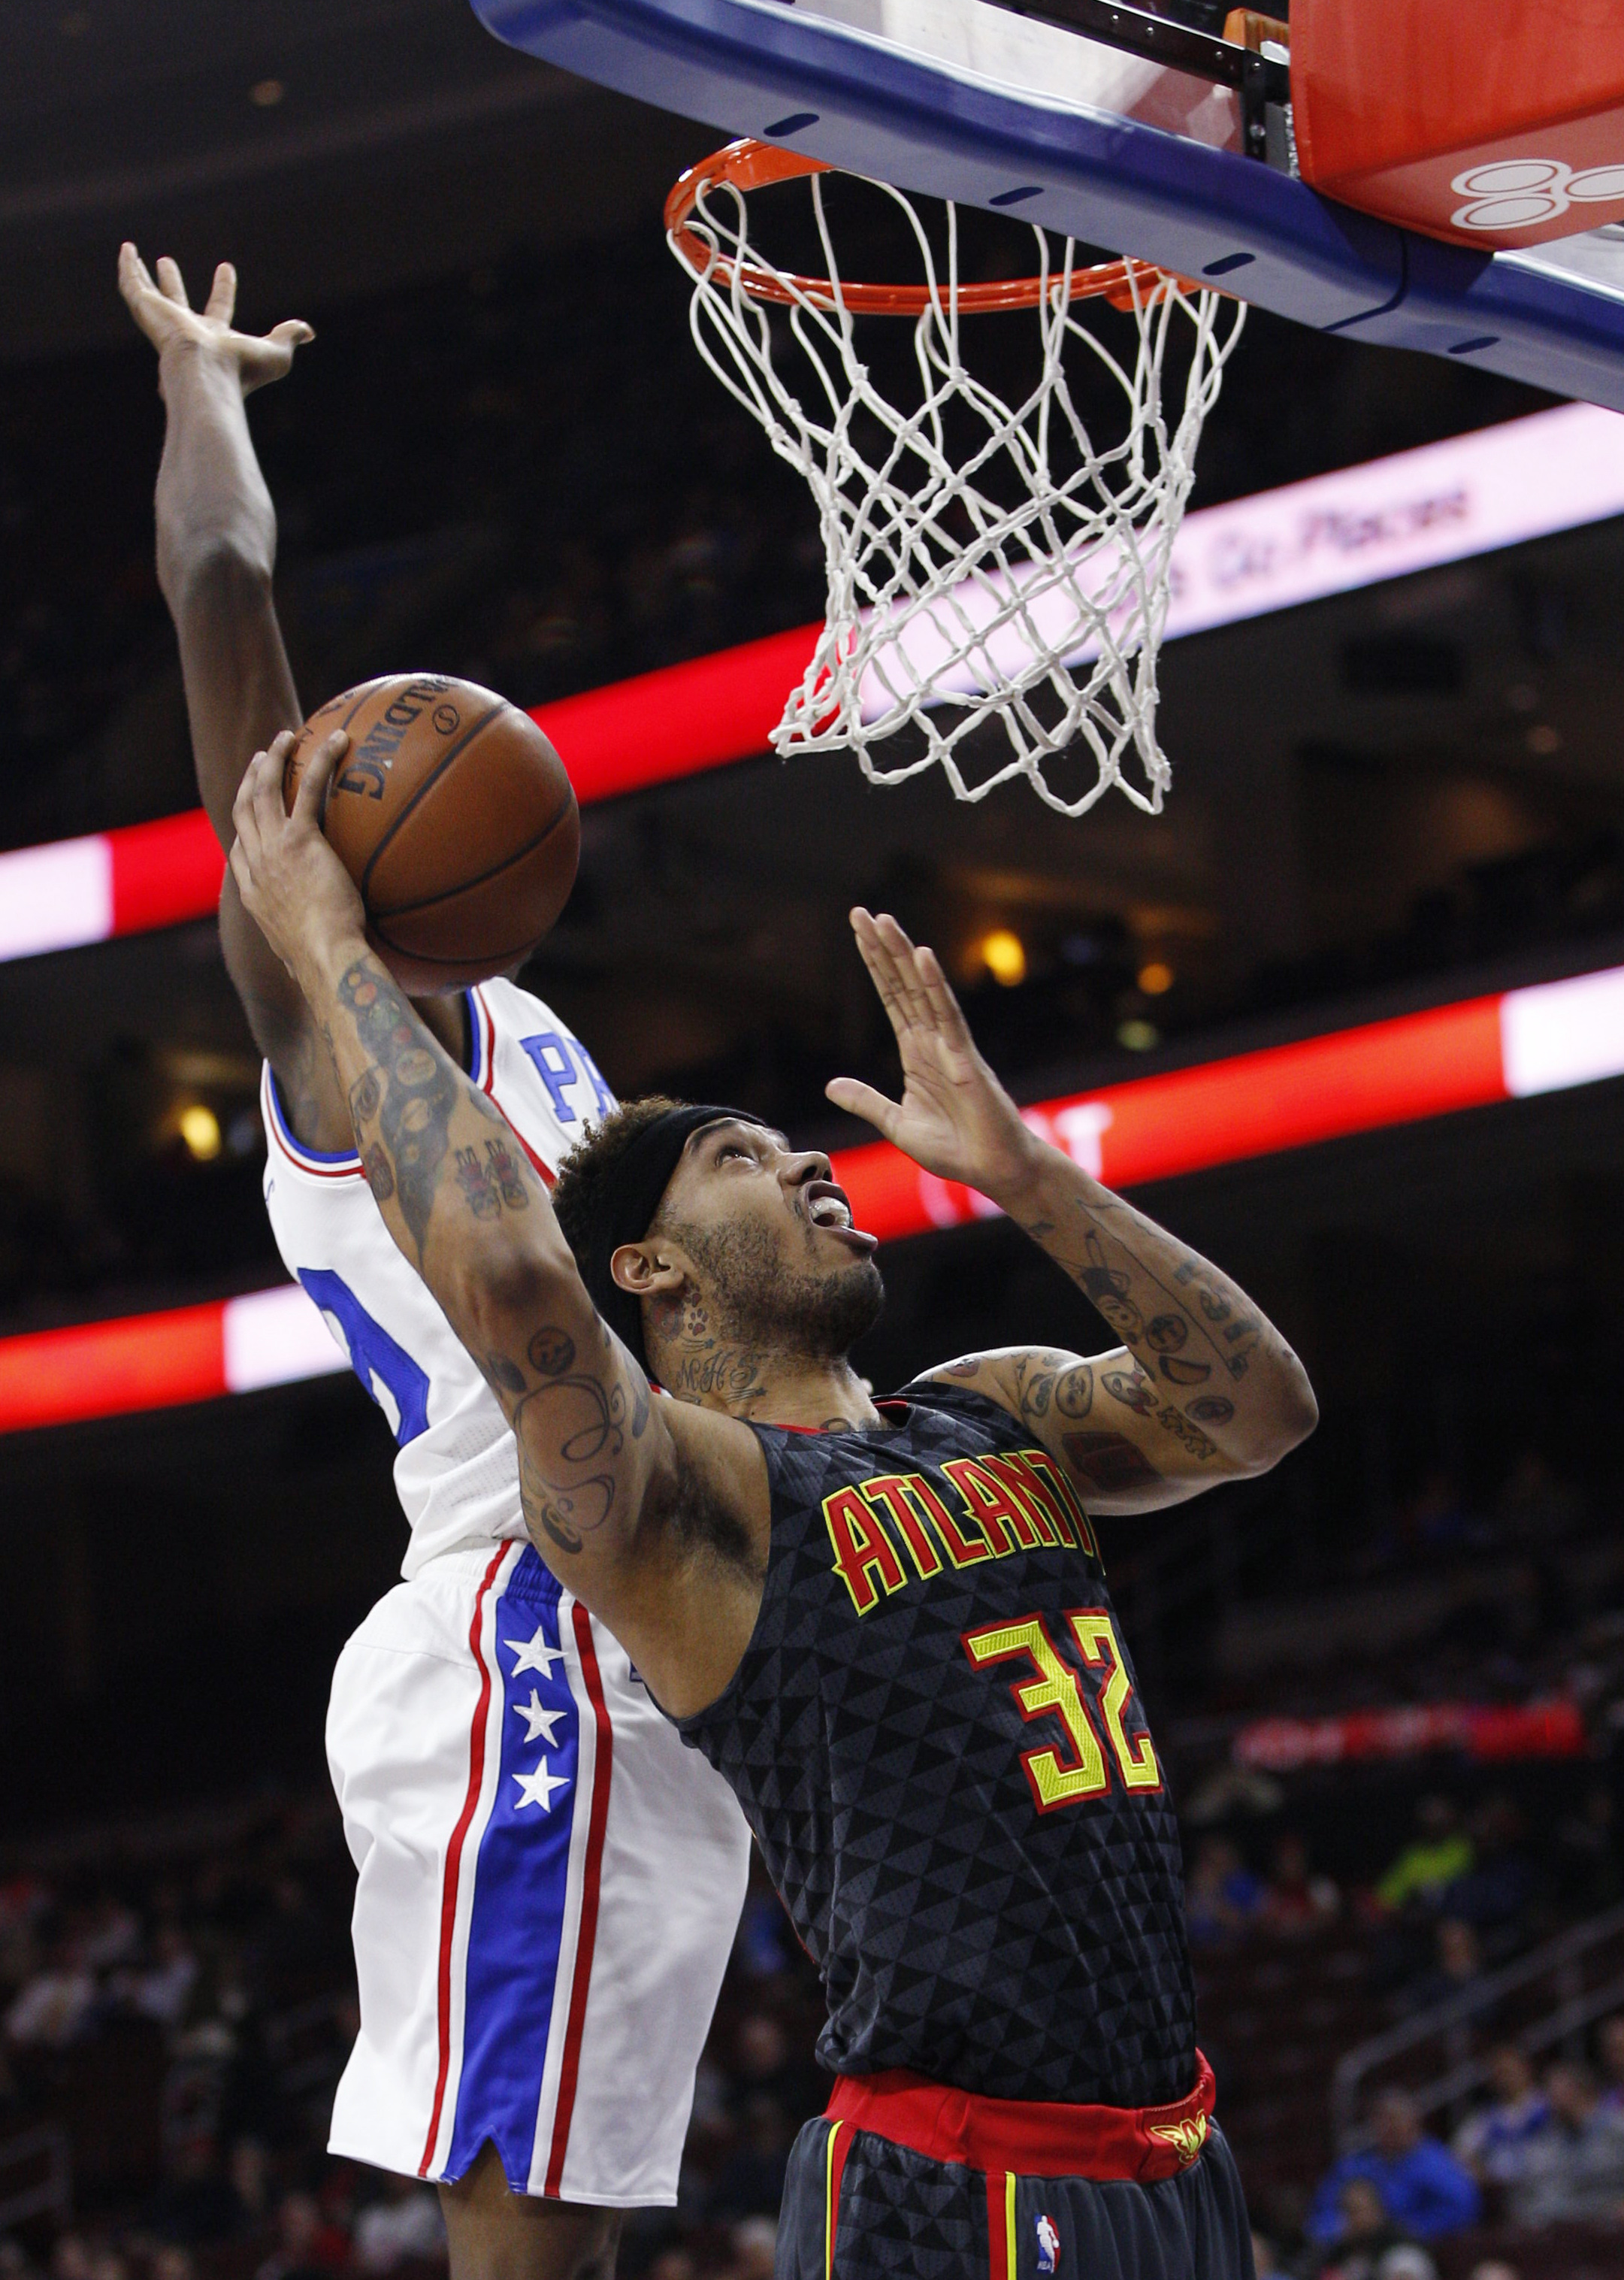 Atlanta Hawks' Mike Scott, right, goes up for a shot as Philadelphia 76ers' Jerami Grant, left, defends during the first half of an NBA basketball game Thursday, Jan. 7, 2016, in Philadelphia. (AP Photo/Chris Szagola)